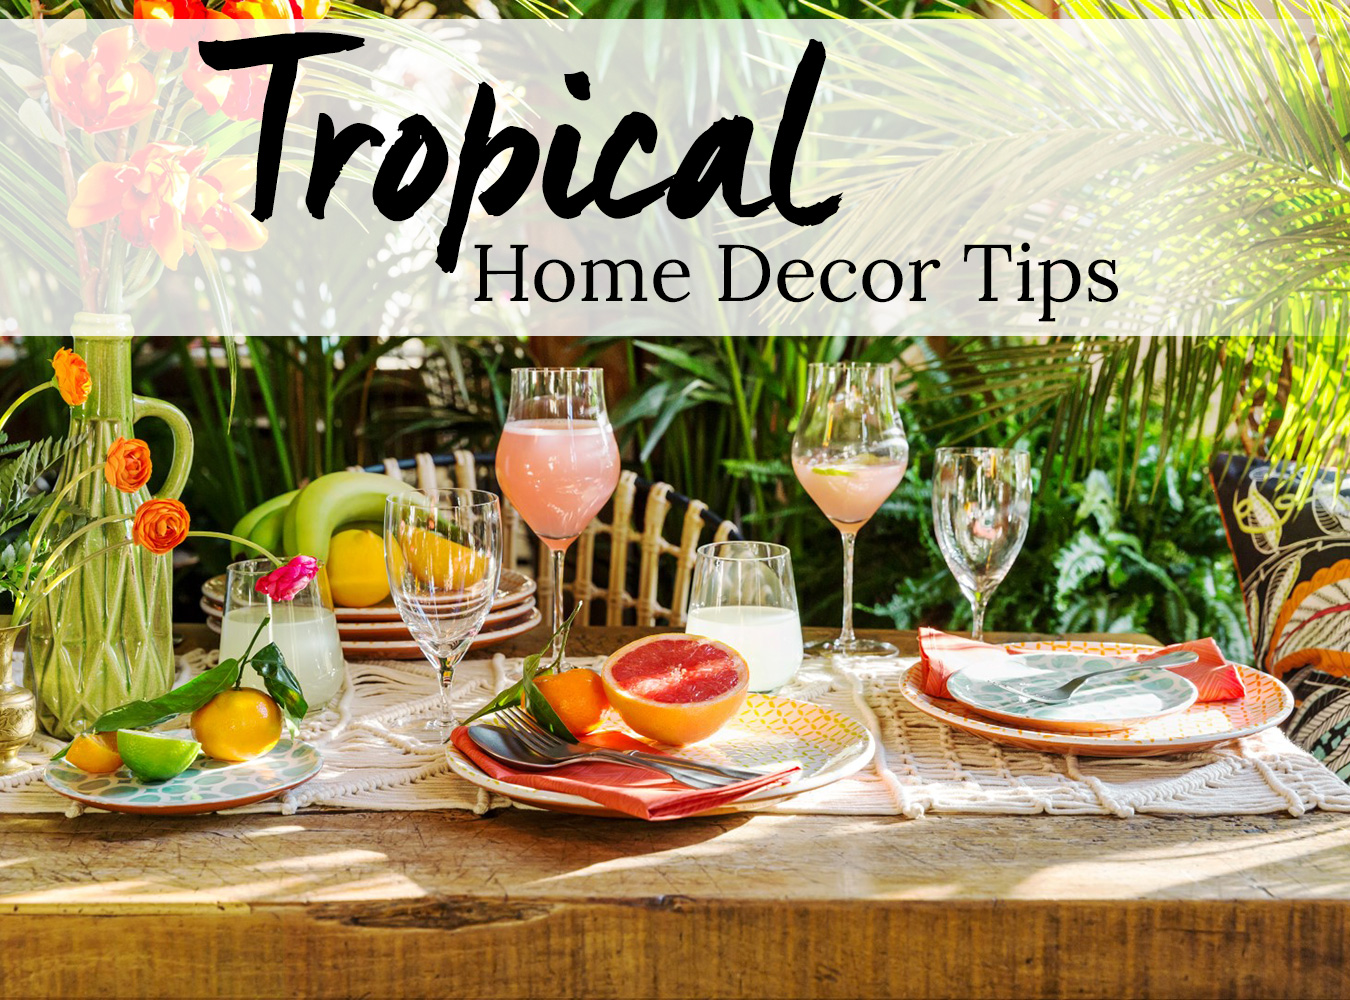 Tropical Home Decor Focuses On Colour And Light In Abundance. The Perfect  Trend To Brighten Up Your Home, It Can Be Incorporated Throughout Your  Interior ...